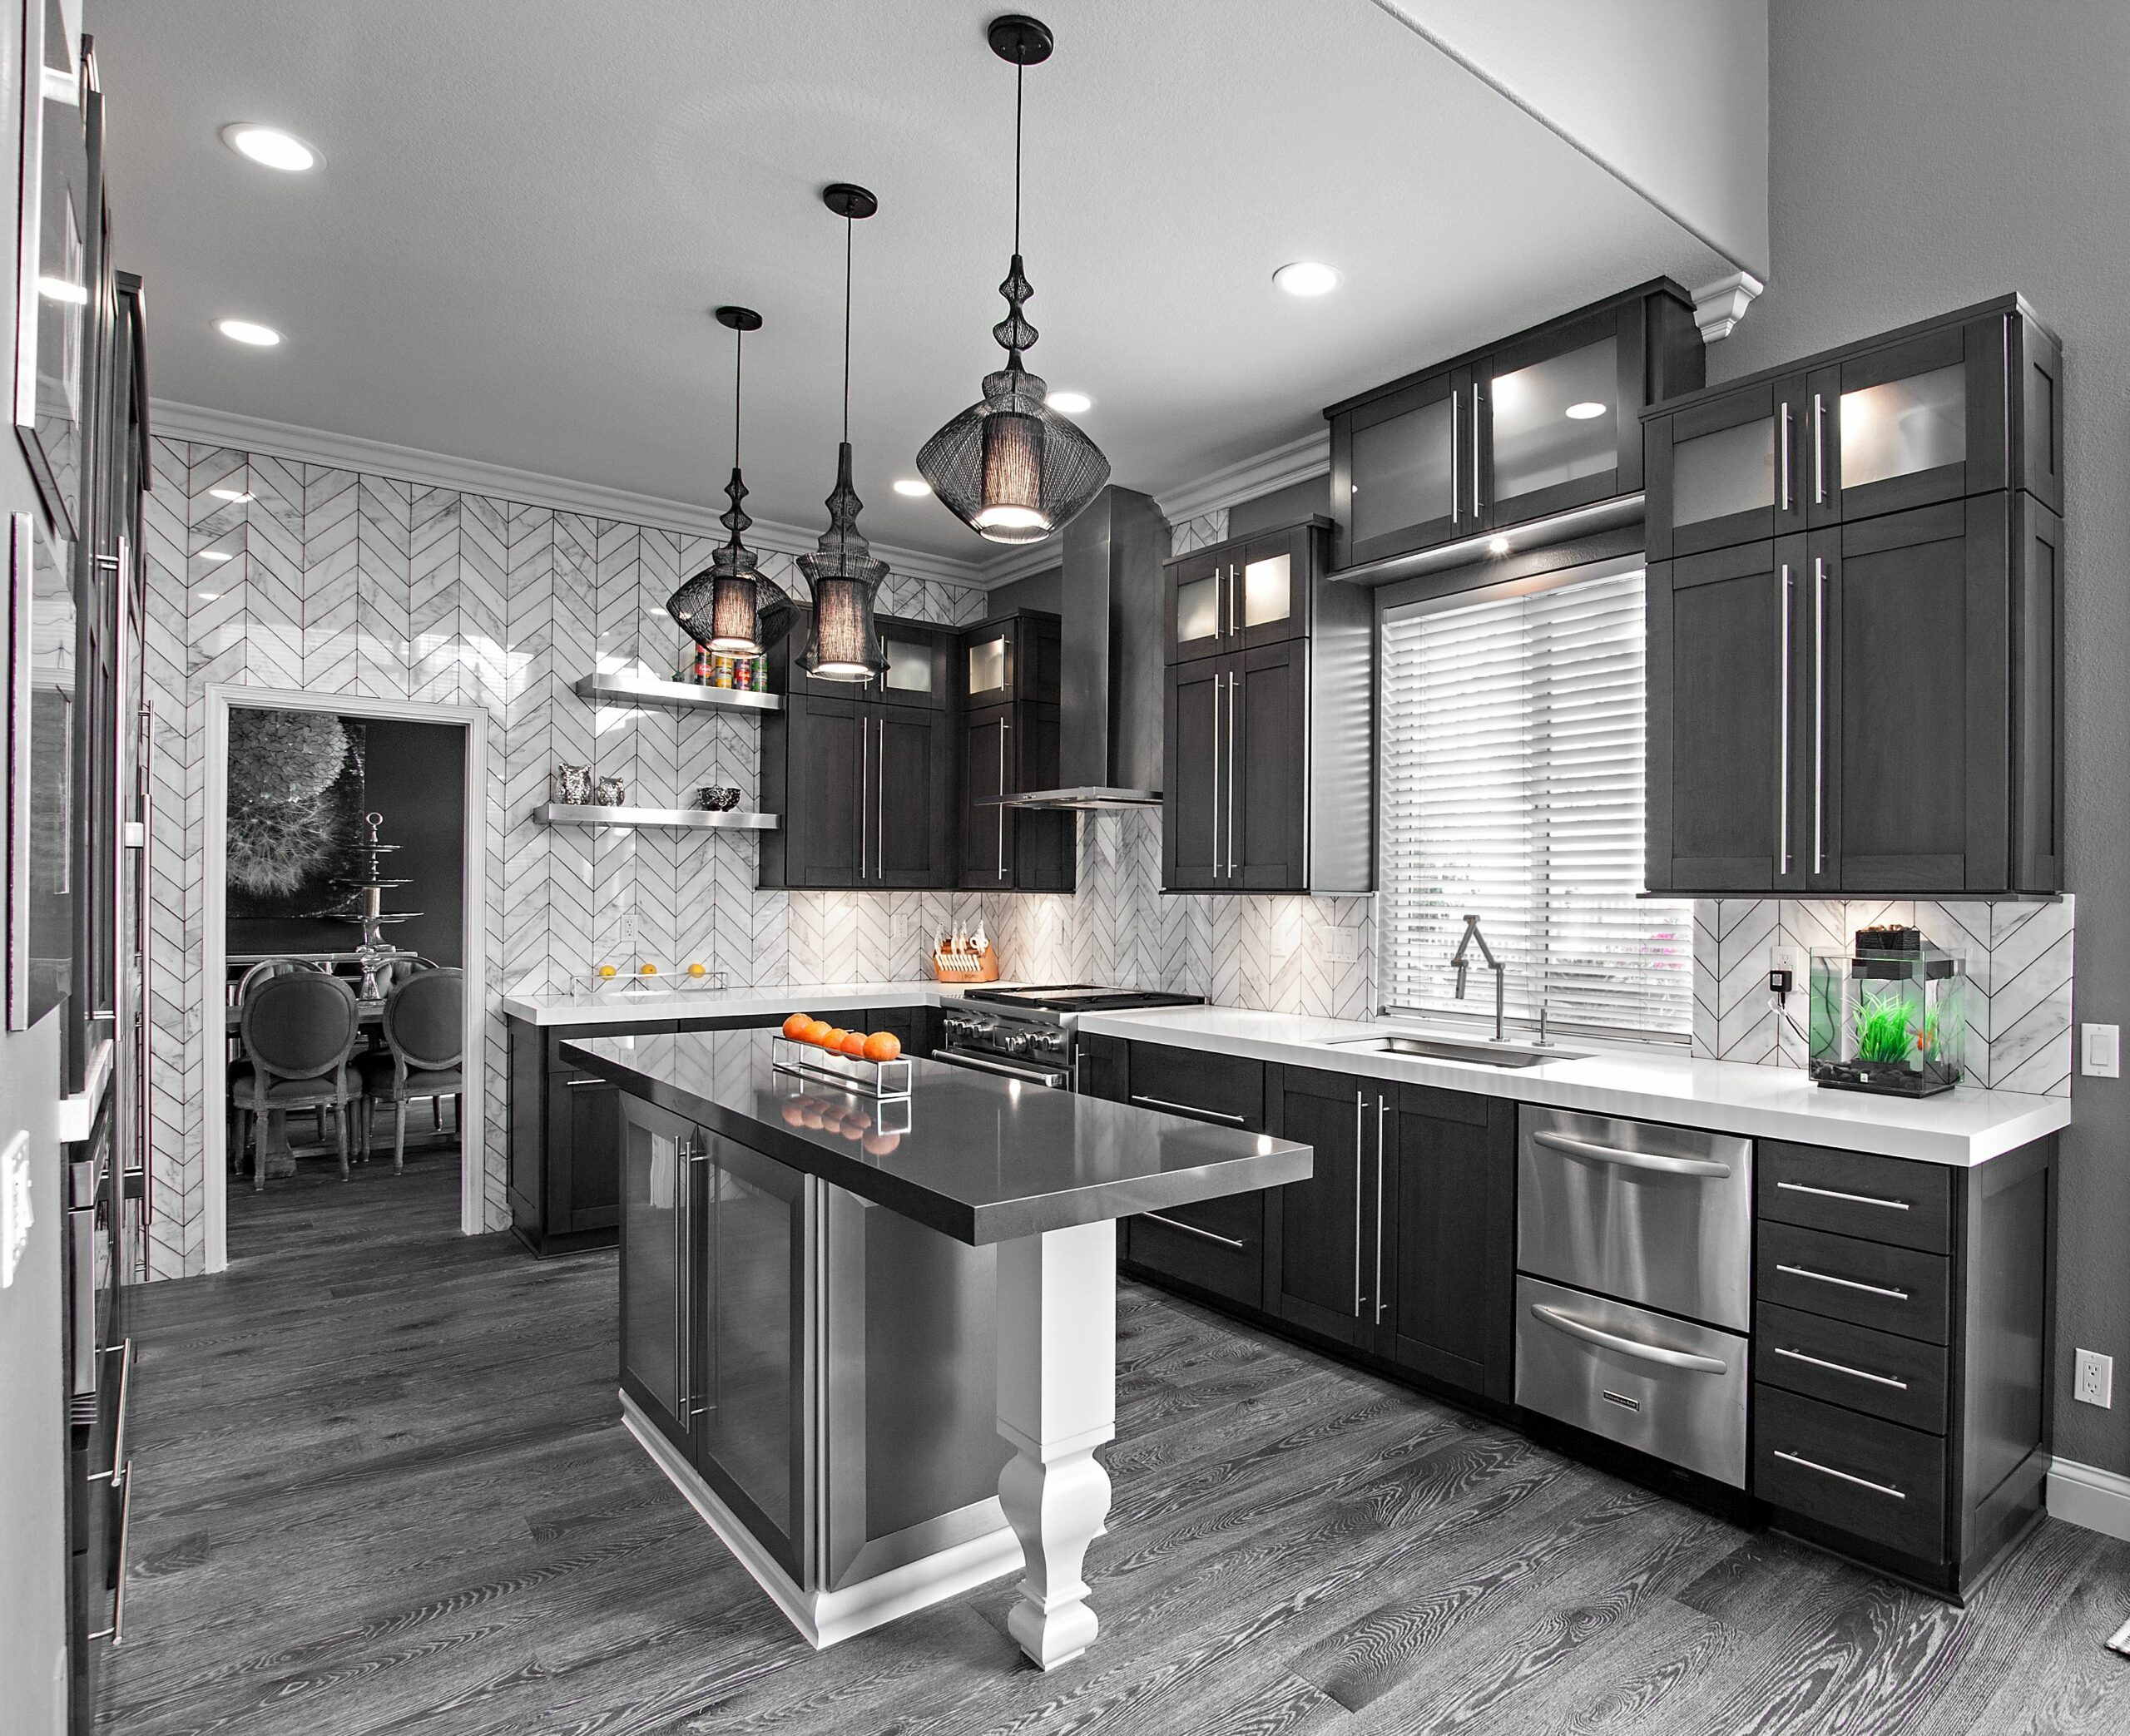 Small Kitchens With White Cabinets And Dark Floors